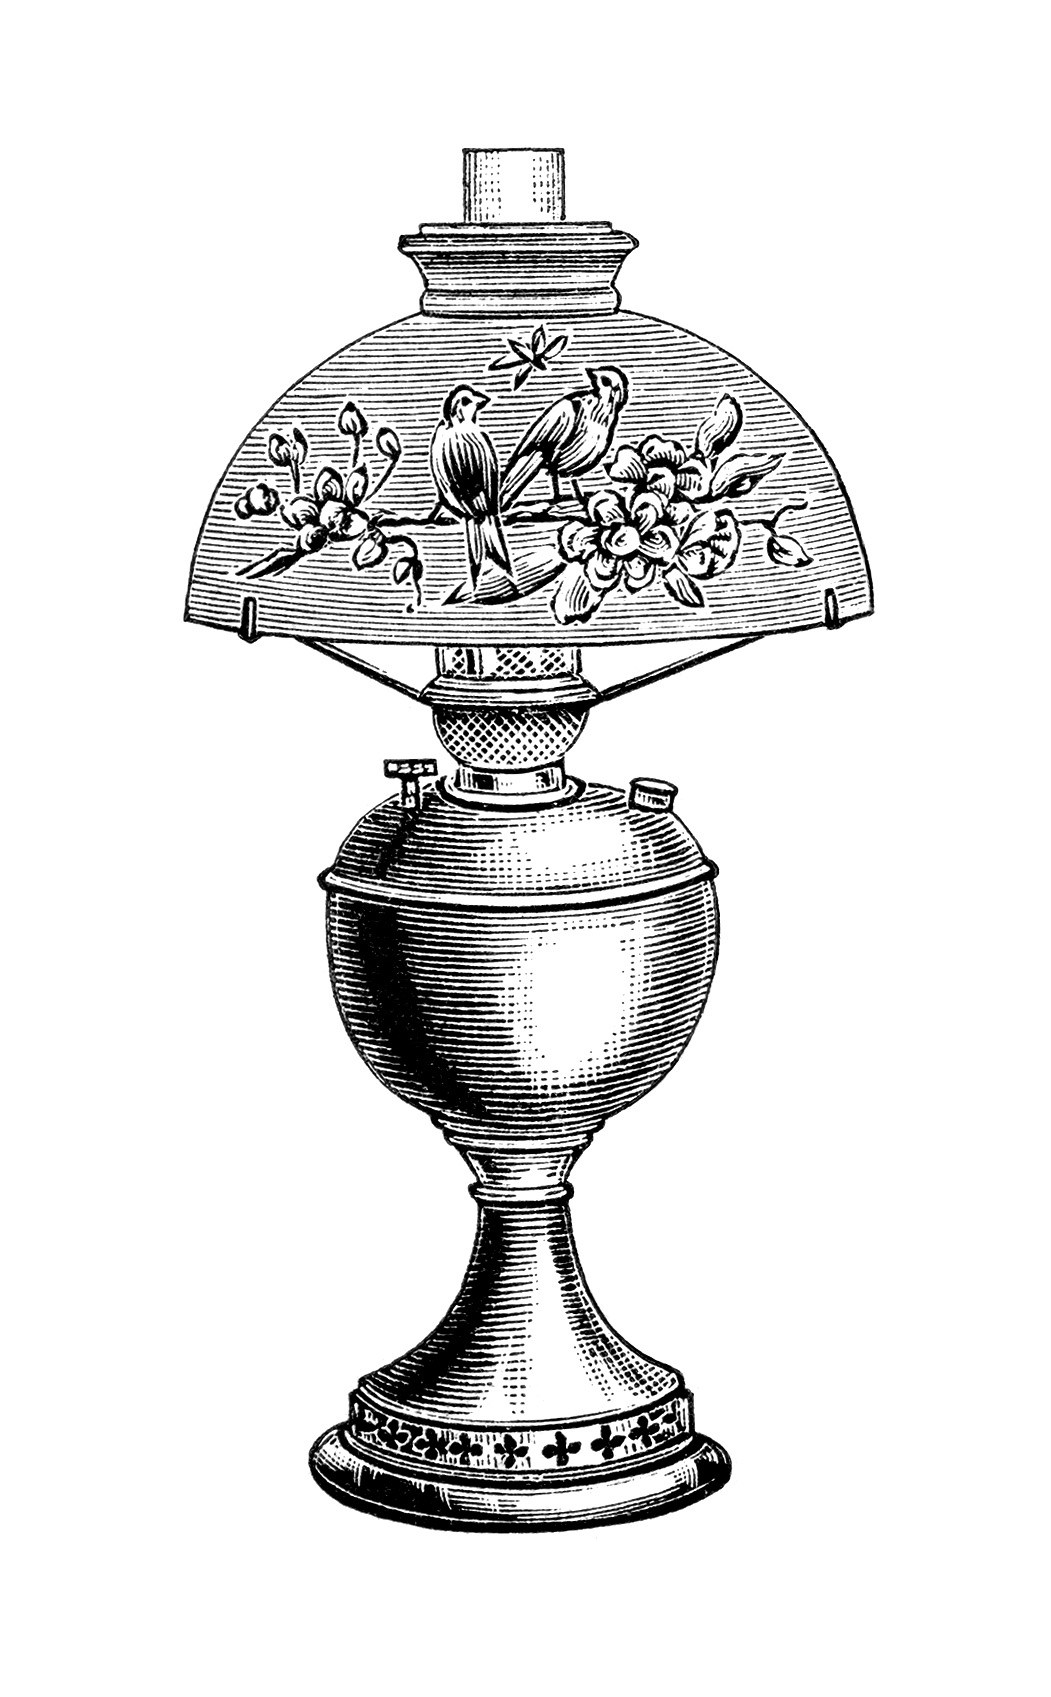 Goblet clipart vintage french And vintage wine image wine